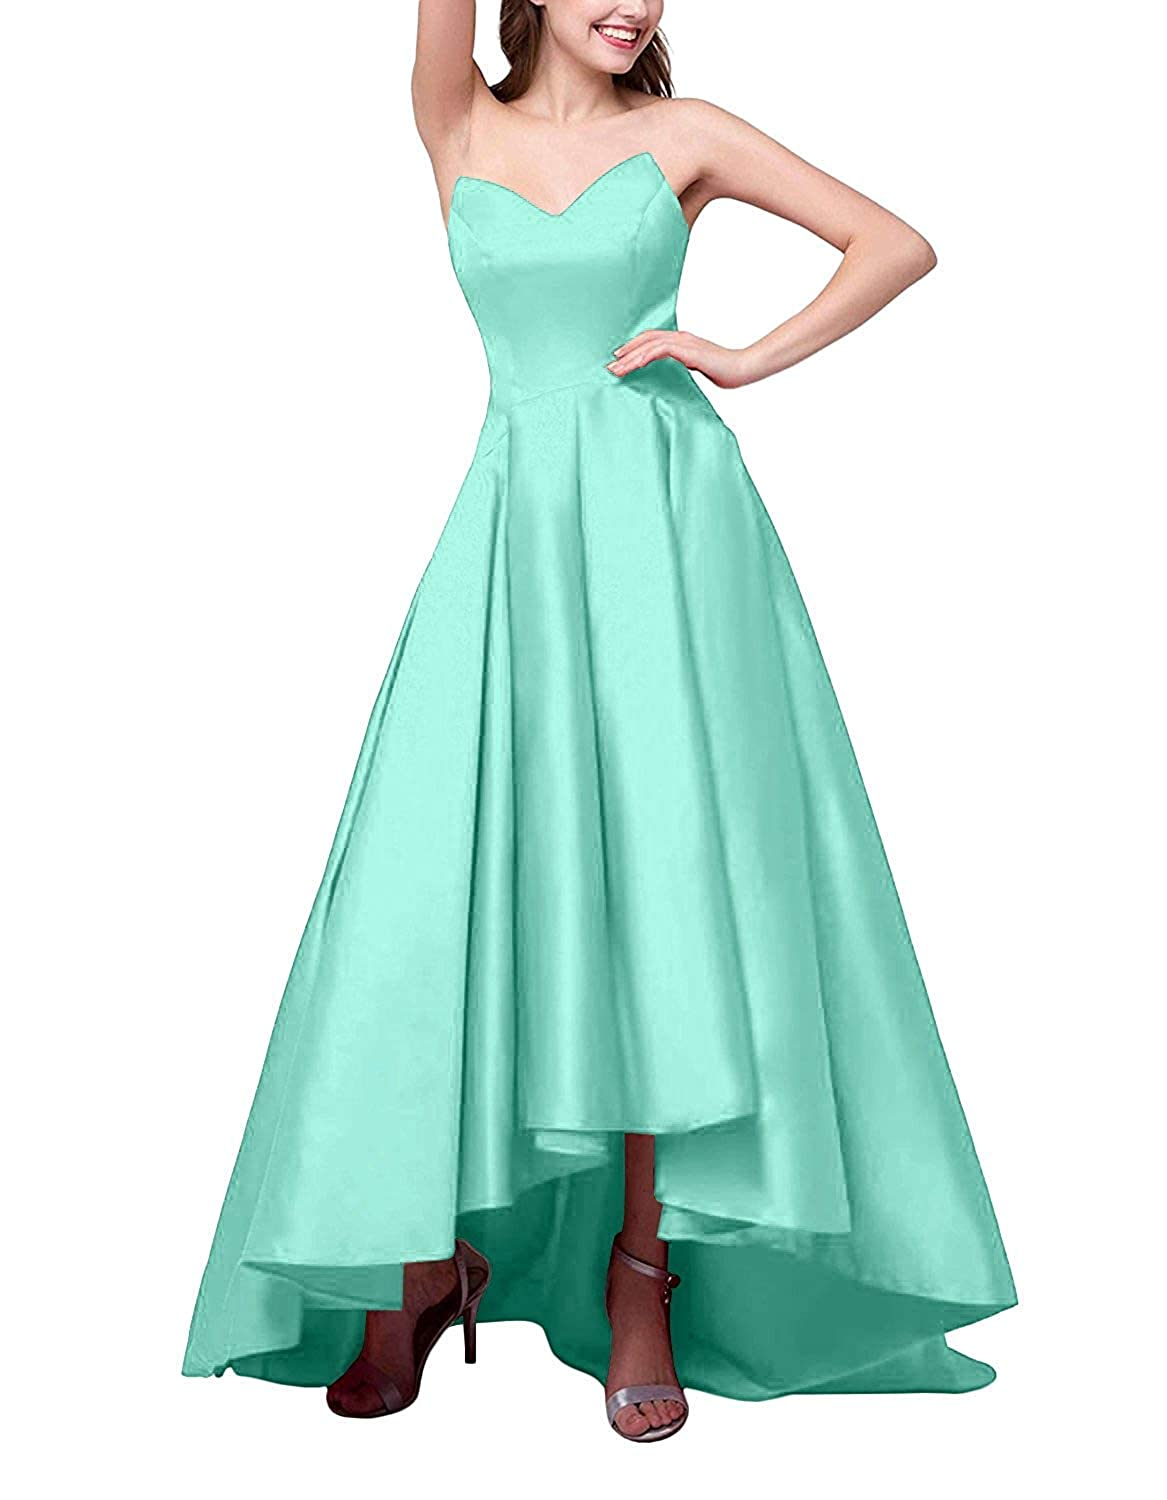 Turquoise ZLQQ Women's V Neck Satin High Low Prom Dresses with Pockets Formal LongEvening Party Gowns